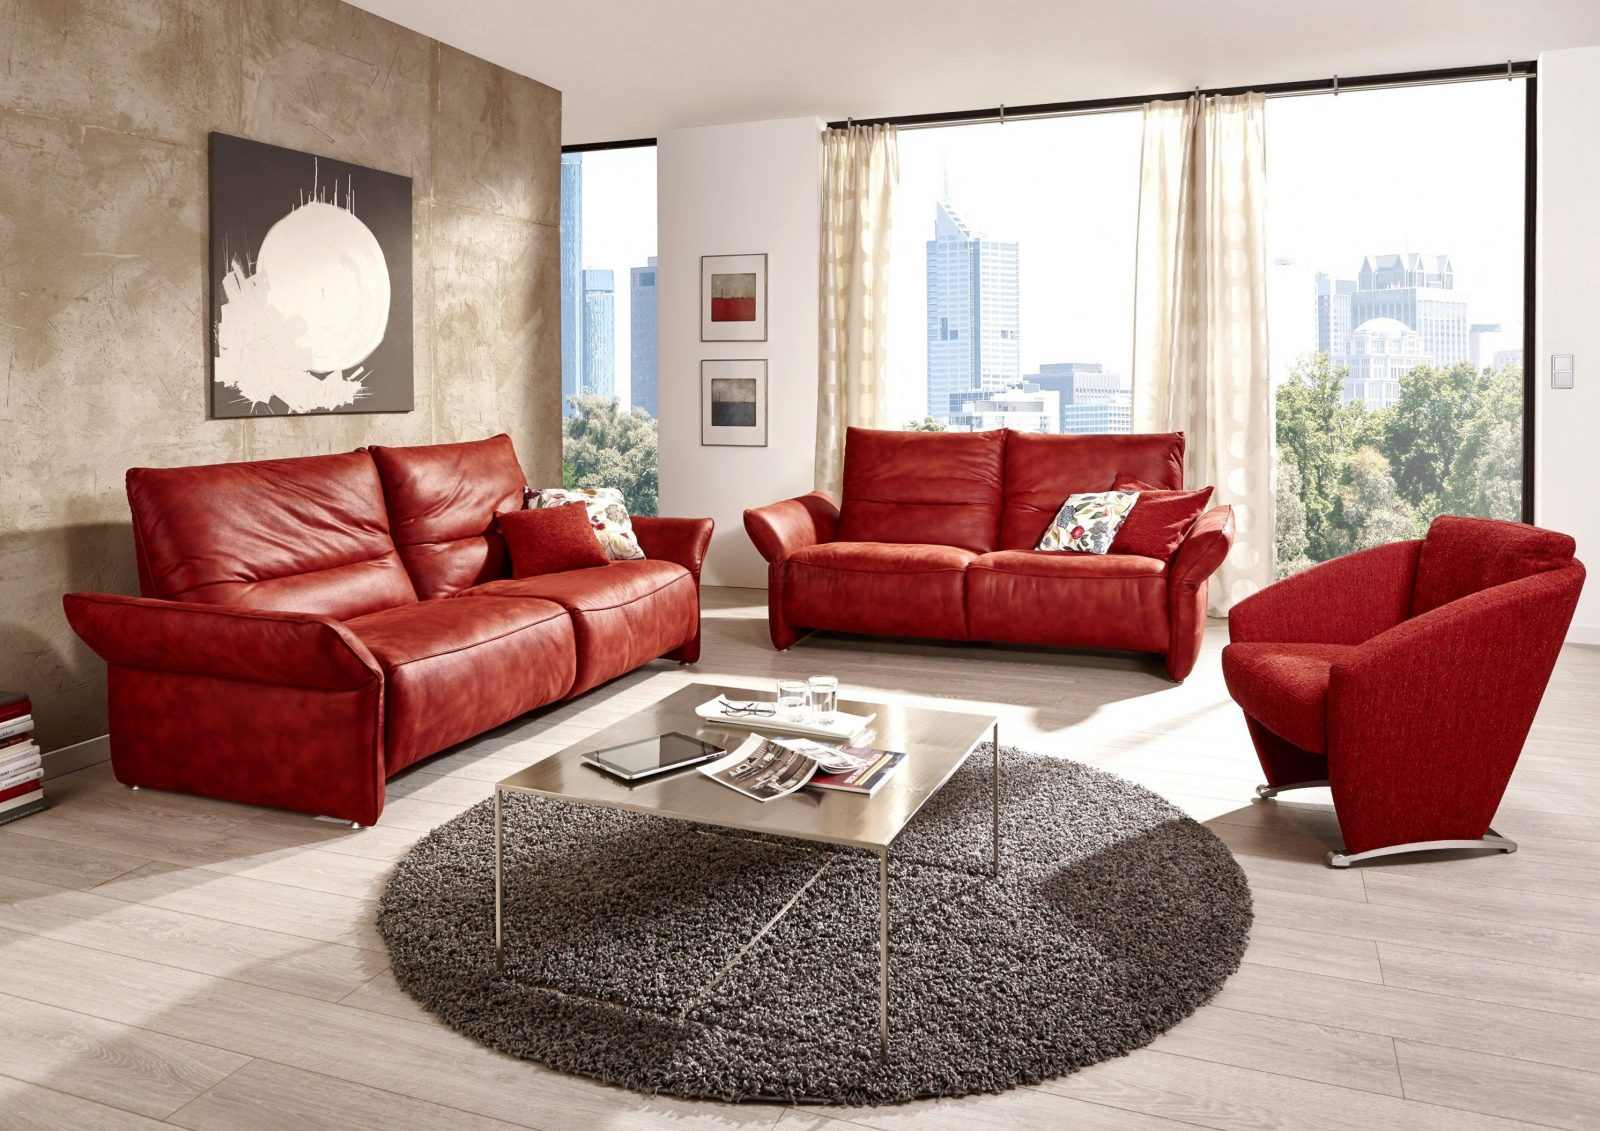 Anthrazit Farbe Sofa Anthrazit Couch Wohnzimmer Farbe